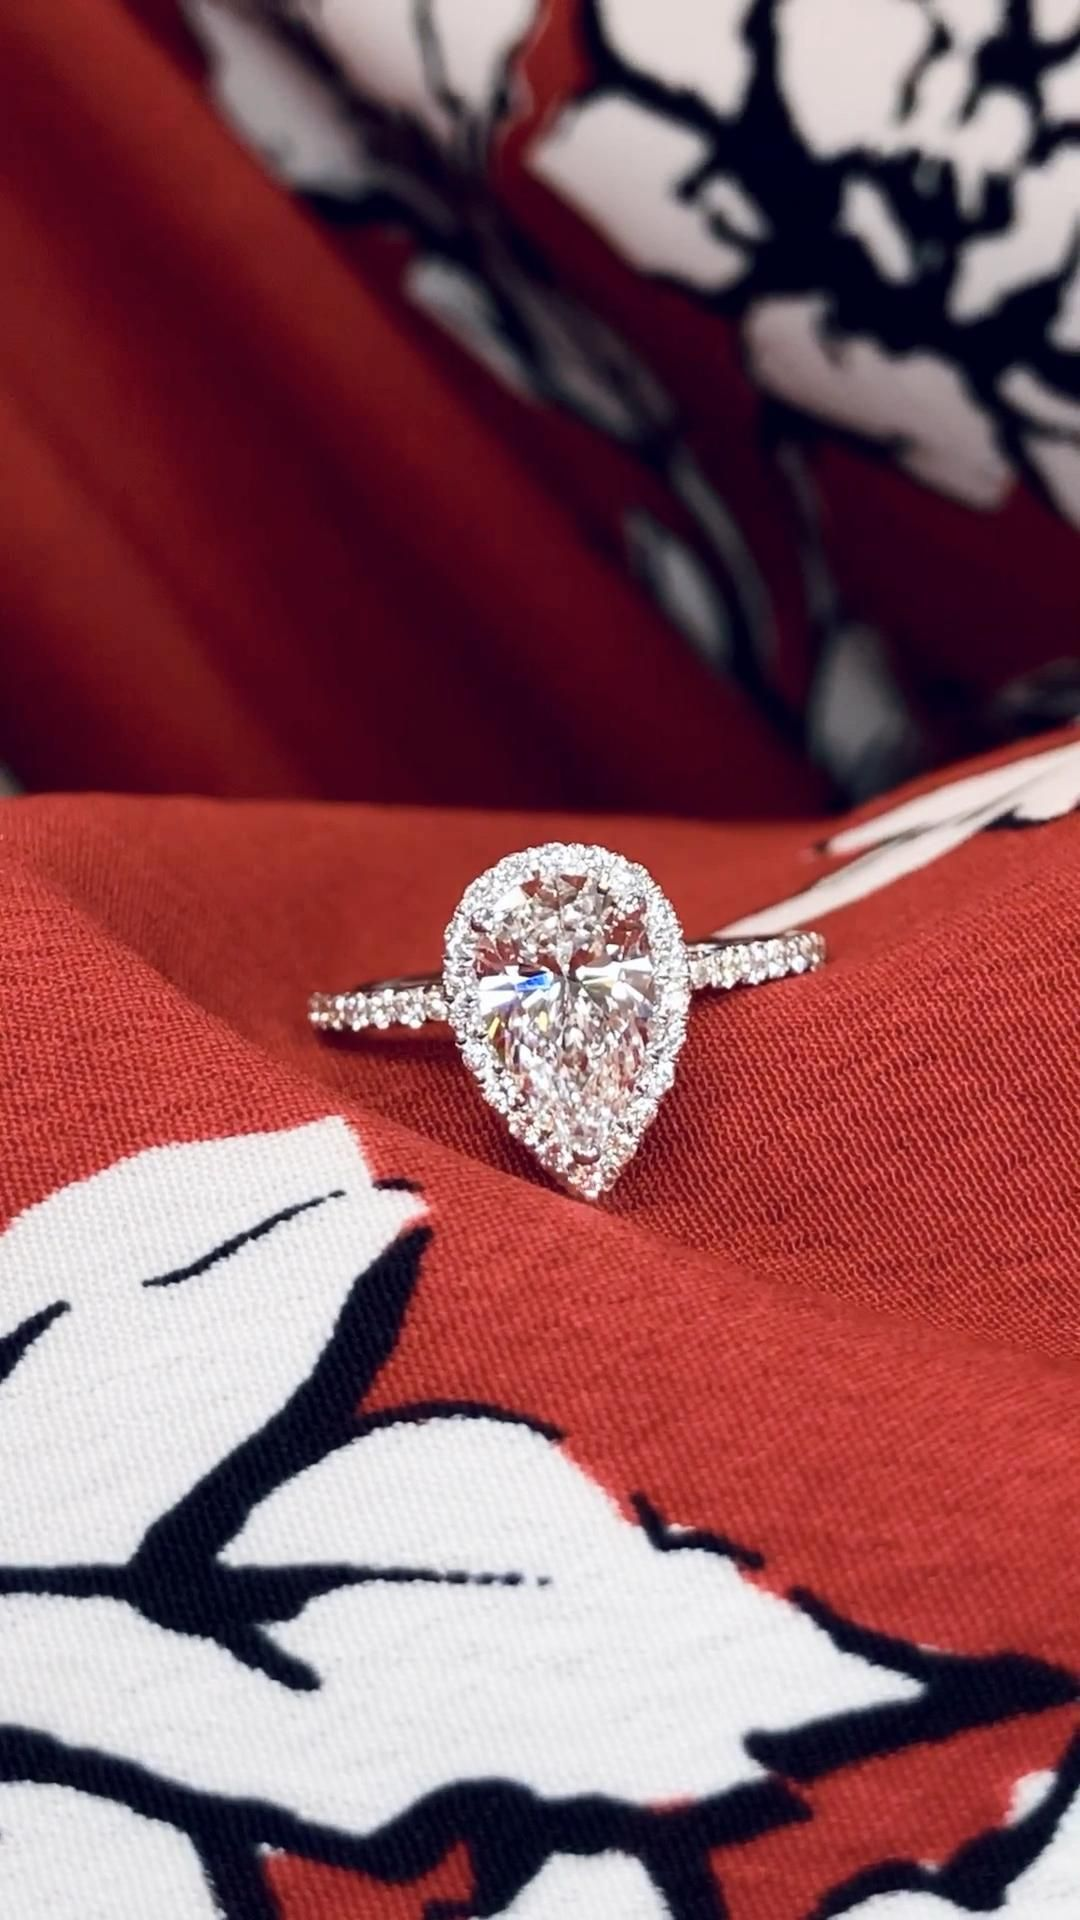 Selected with the same impeccable care as our natural diamonds, this pear shape lab created diamond engagement ring is the perfect one for her. Designed with a delicate diamond halo and band for a stunning look. By Ascot Diamonds.